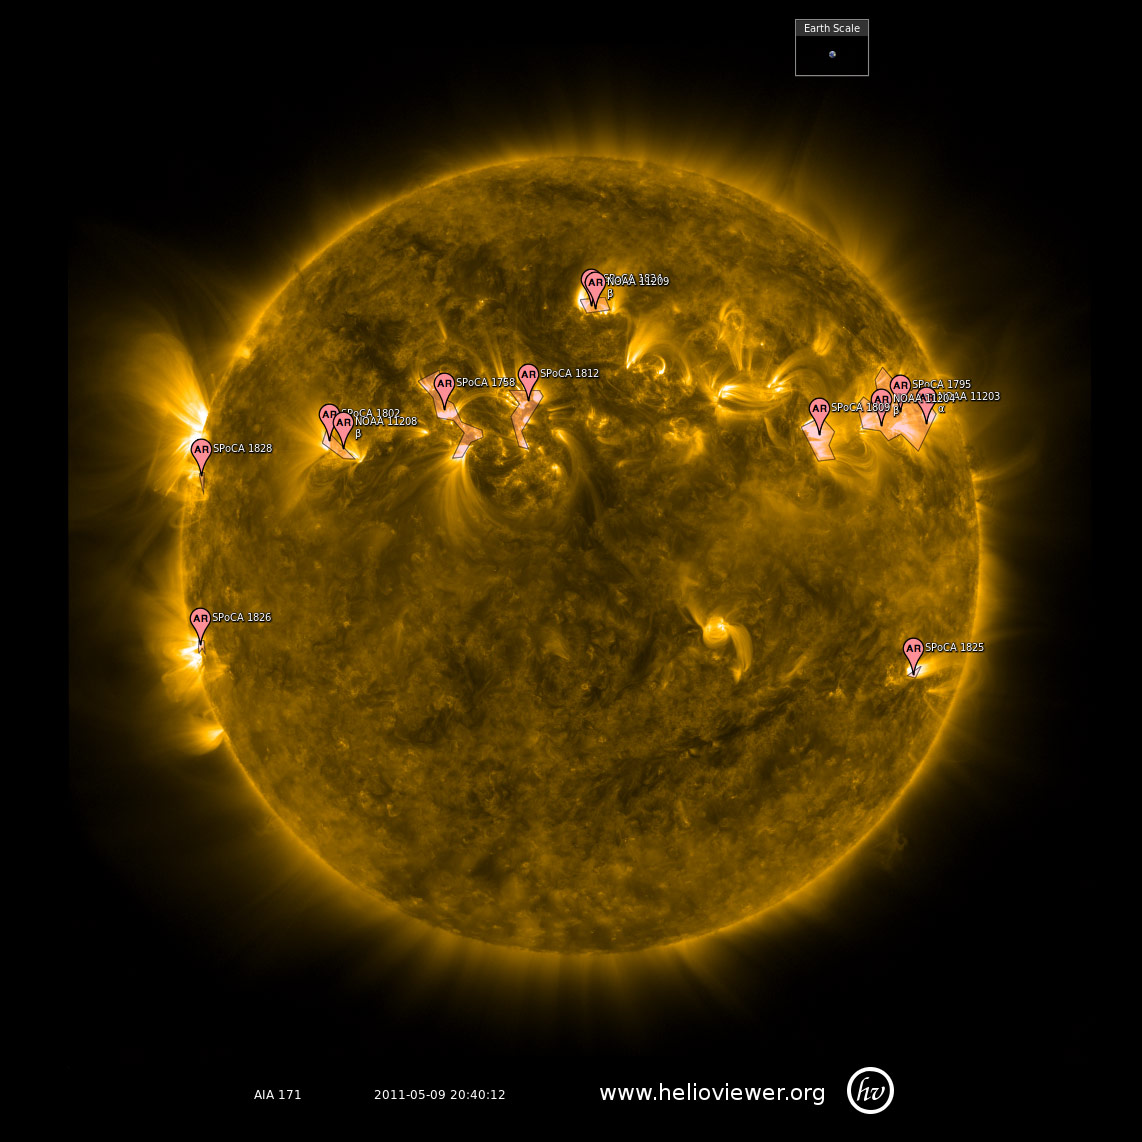 At ~20:40 UT on May 9, 2011 the area produced a C5 solar flare.